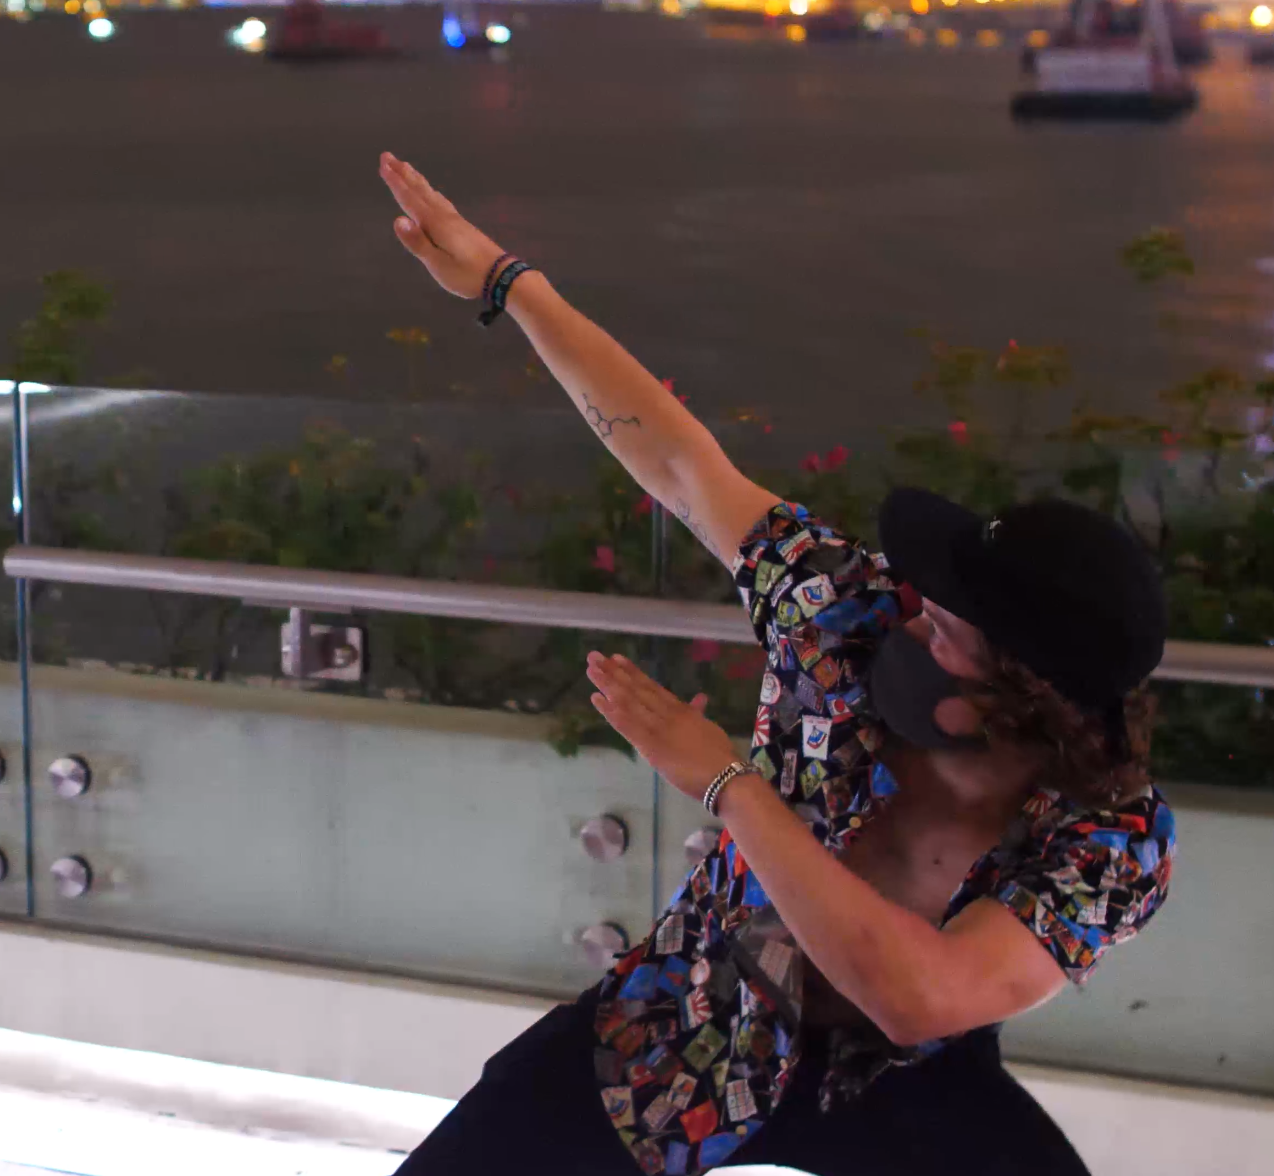 Dabs up - photo by Richard Taylor